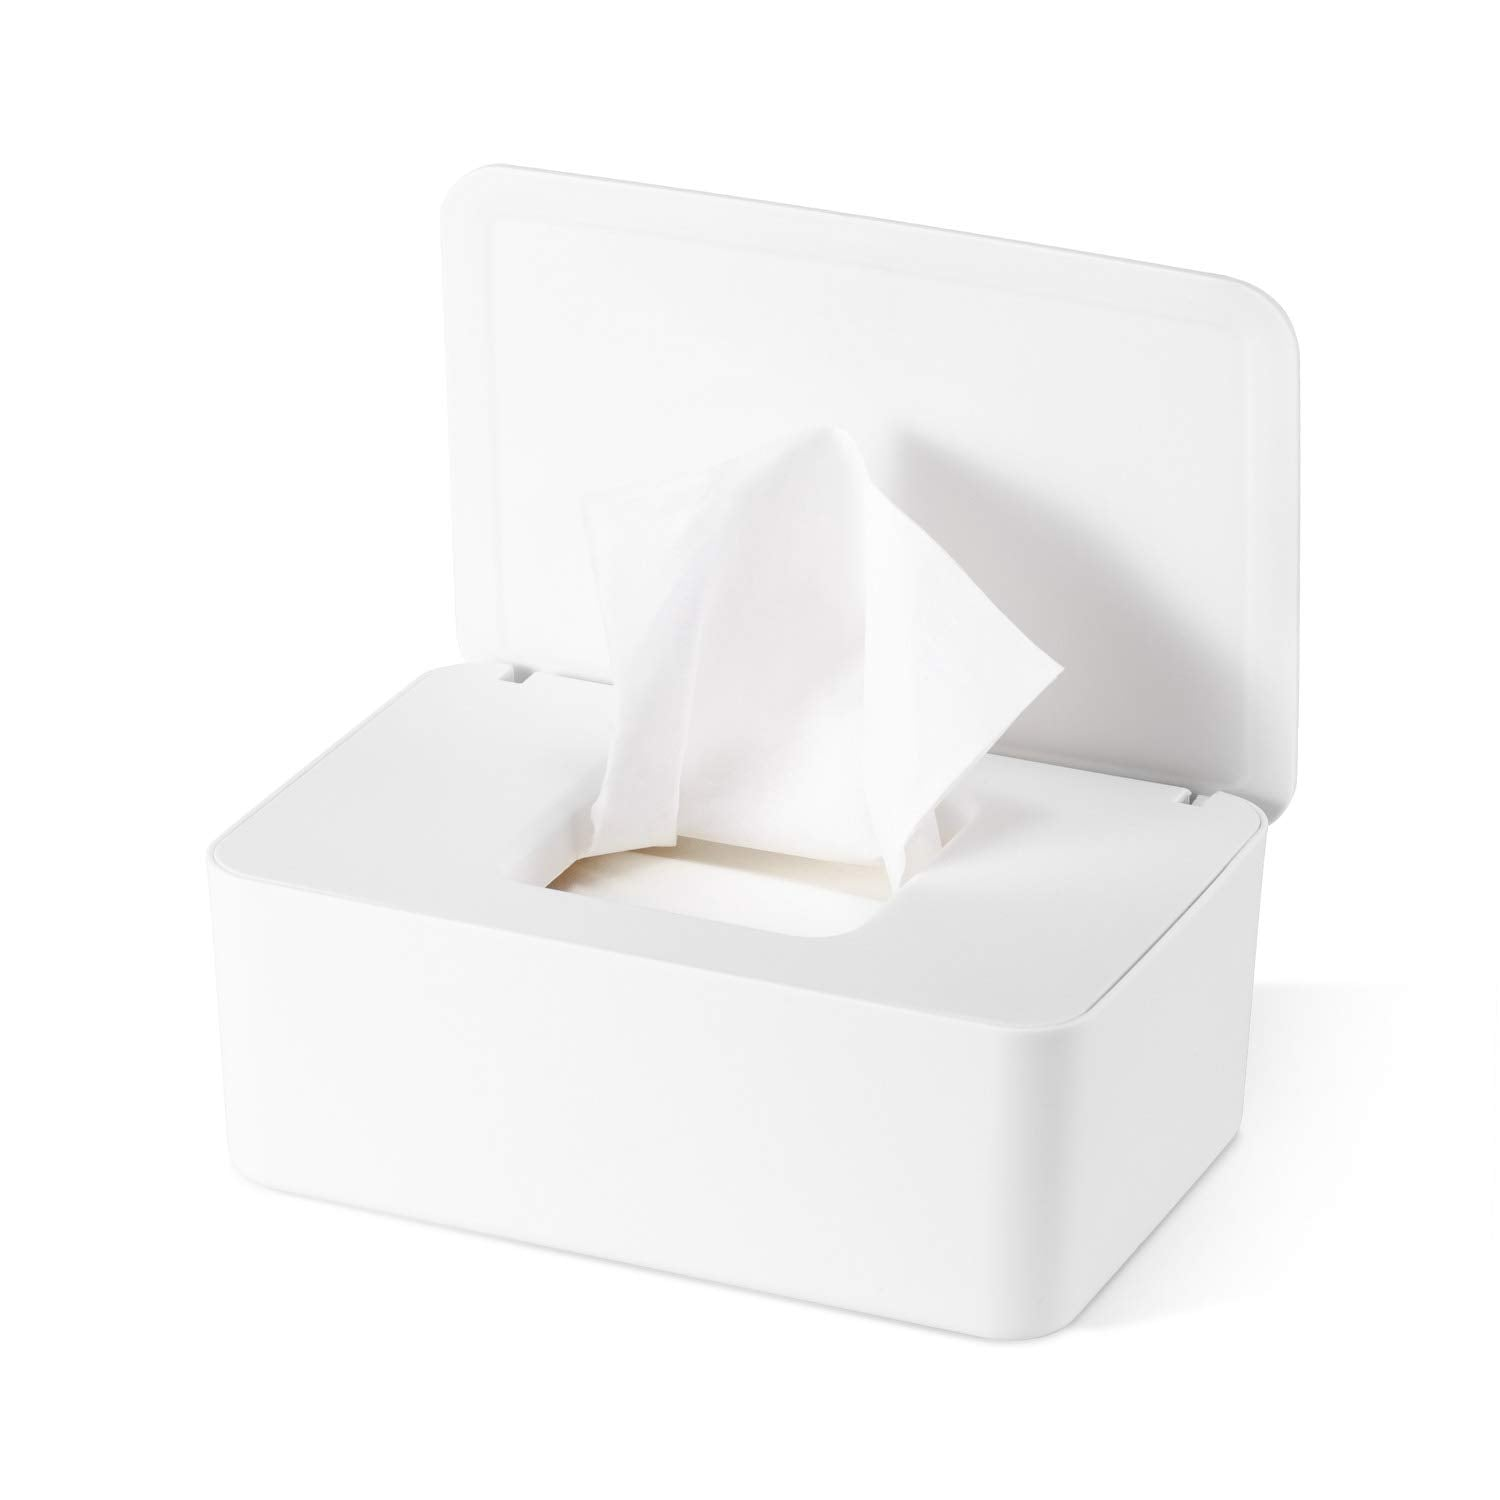 Refillable Wipes Container